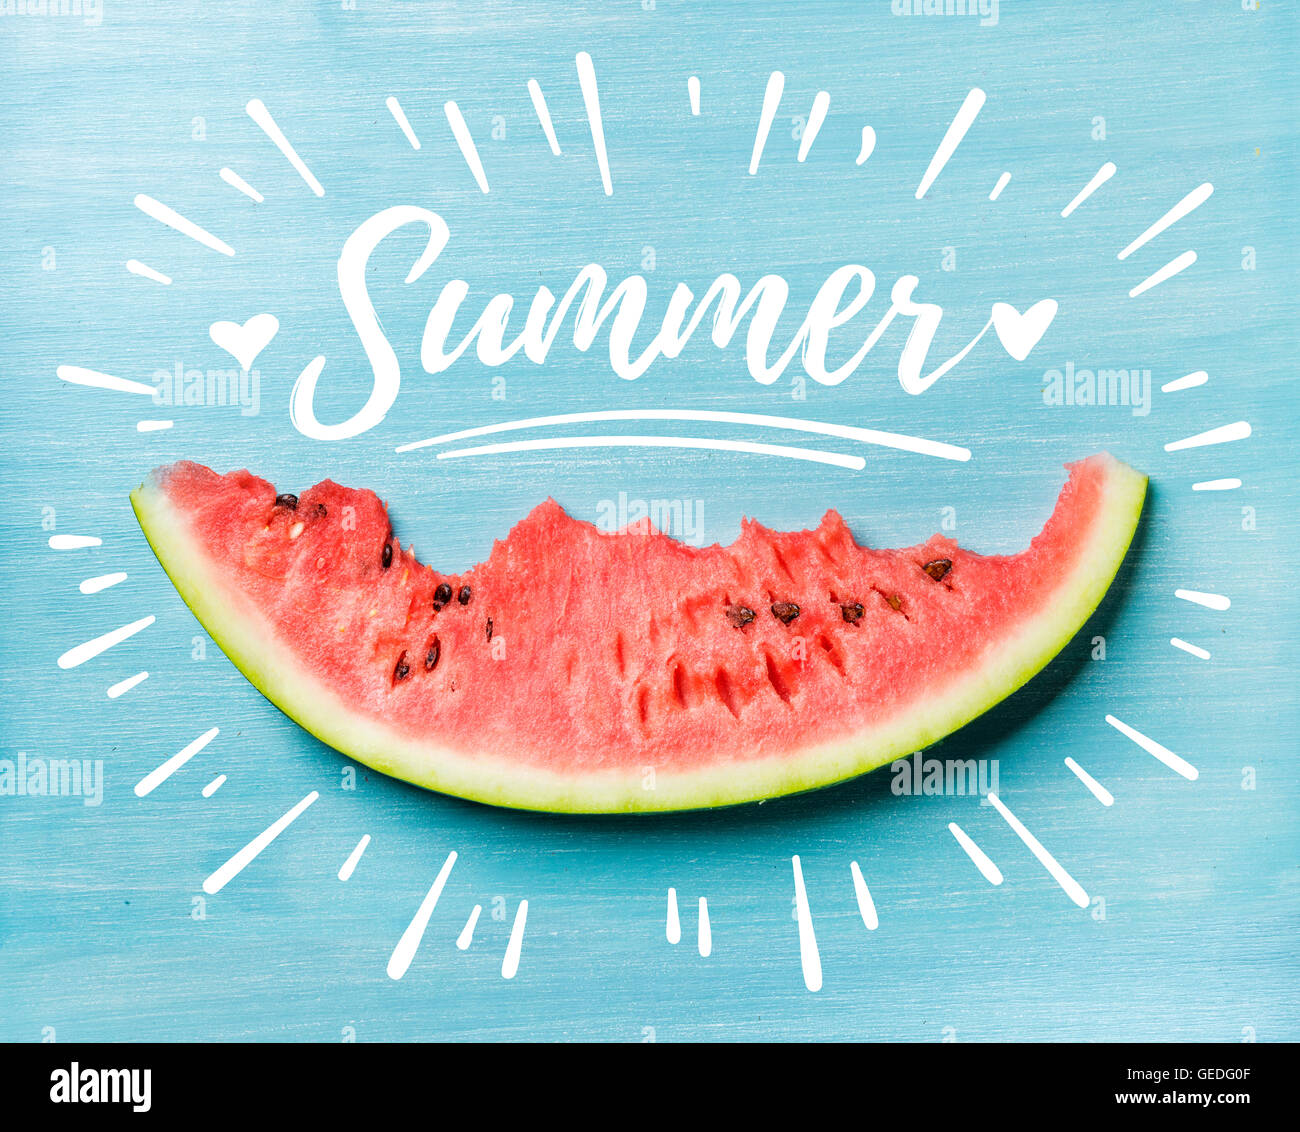 Summer concept illustration. Slice of watermelon on turquoise blue background, top view. - Stock Image